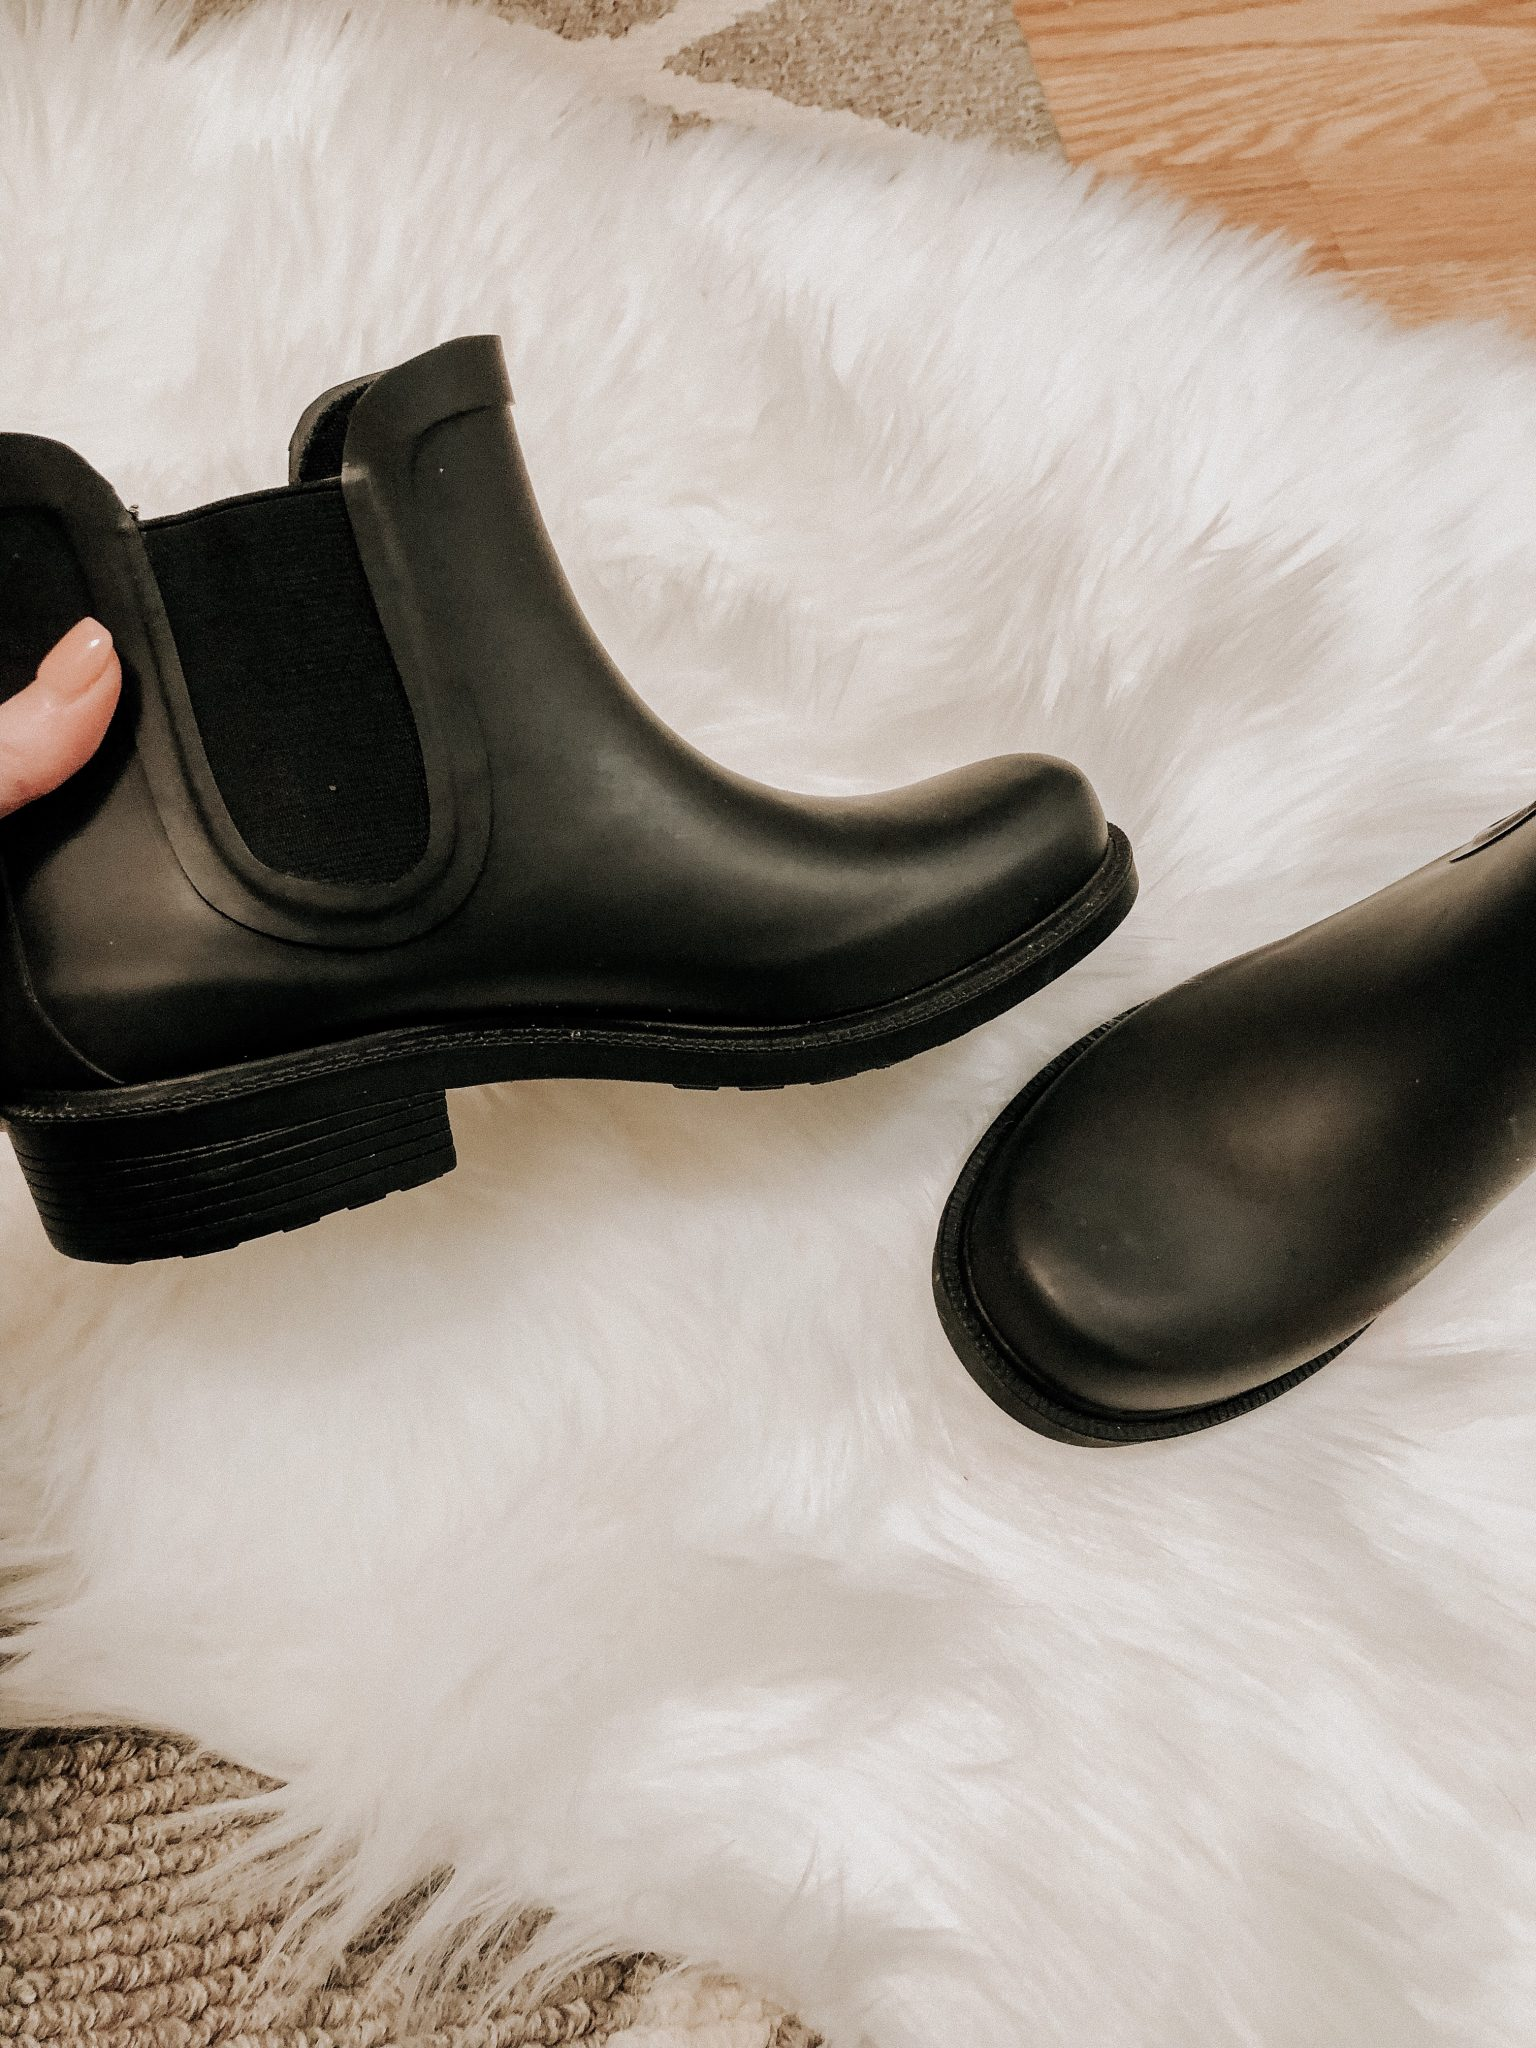 Shoe capsule for fall | Daily Splendor Life and Style Blog | #fallshoes #shoeroundup #shoecapsule #rainboots #booties #flatlay #fallstyle #momstyle #casualstyle #targetstyle #madewell